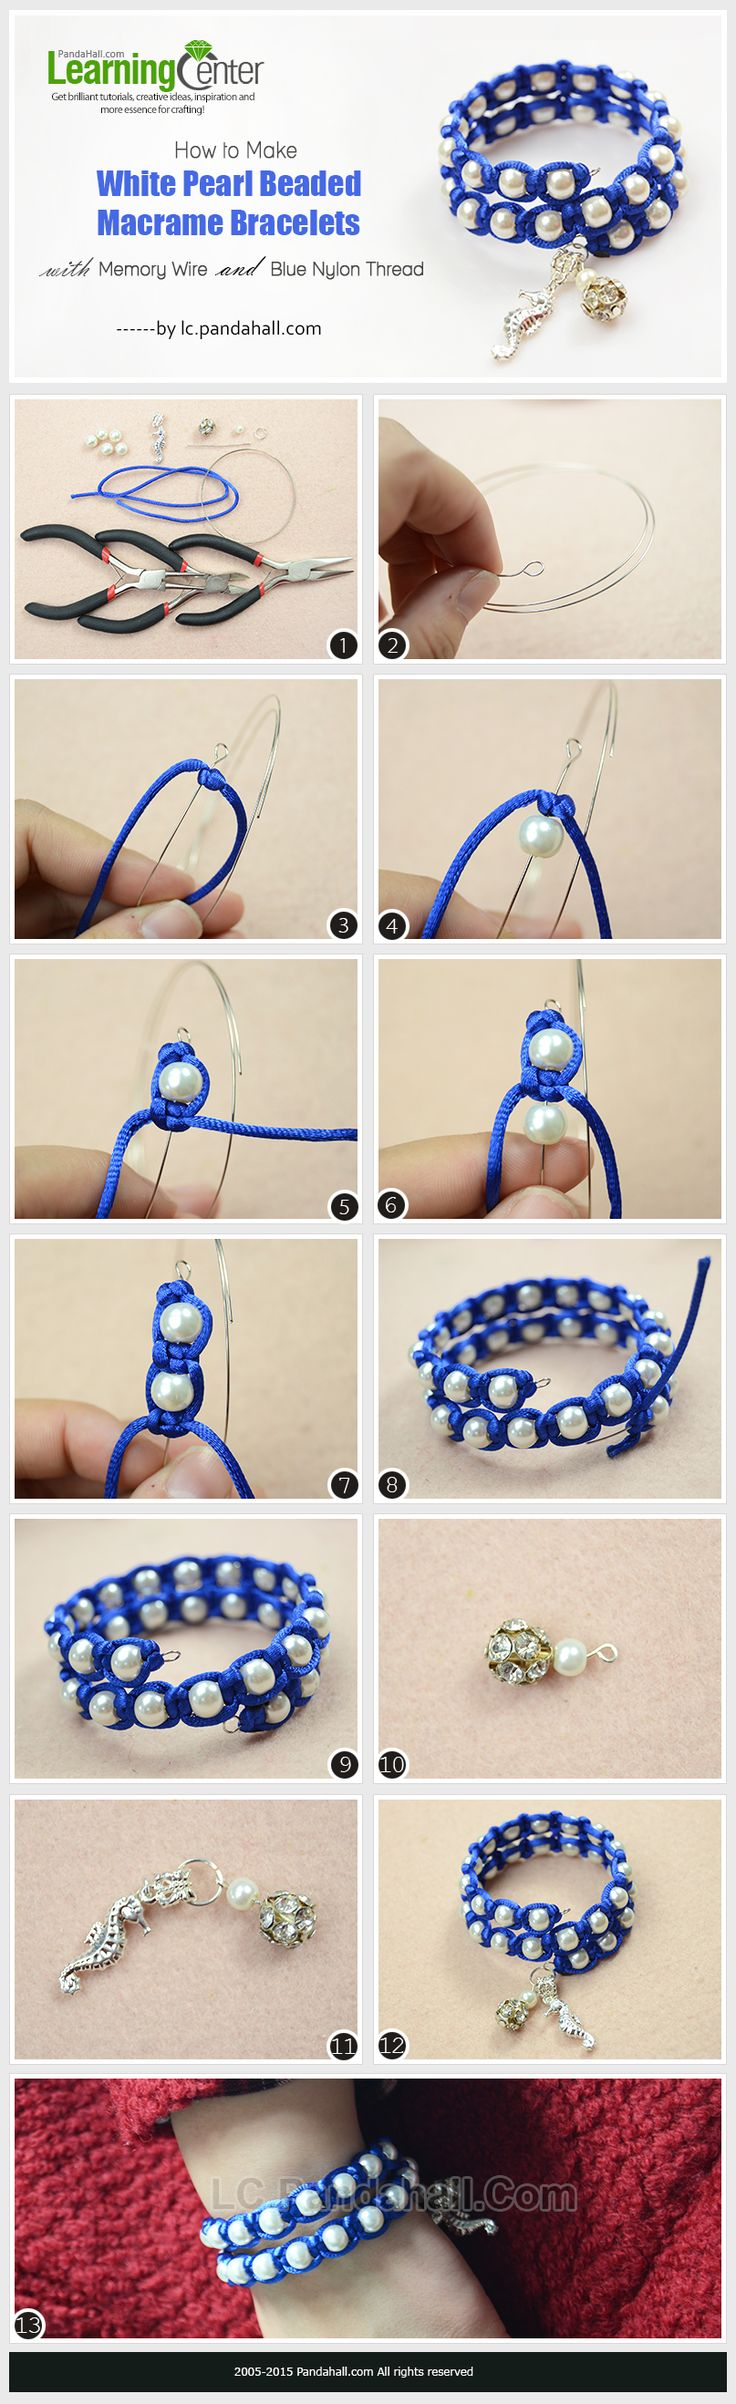 How to Make White Pearl Beaded Macrame Bracelets with Memory Wire and Blue Nylon…